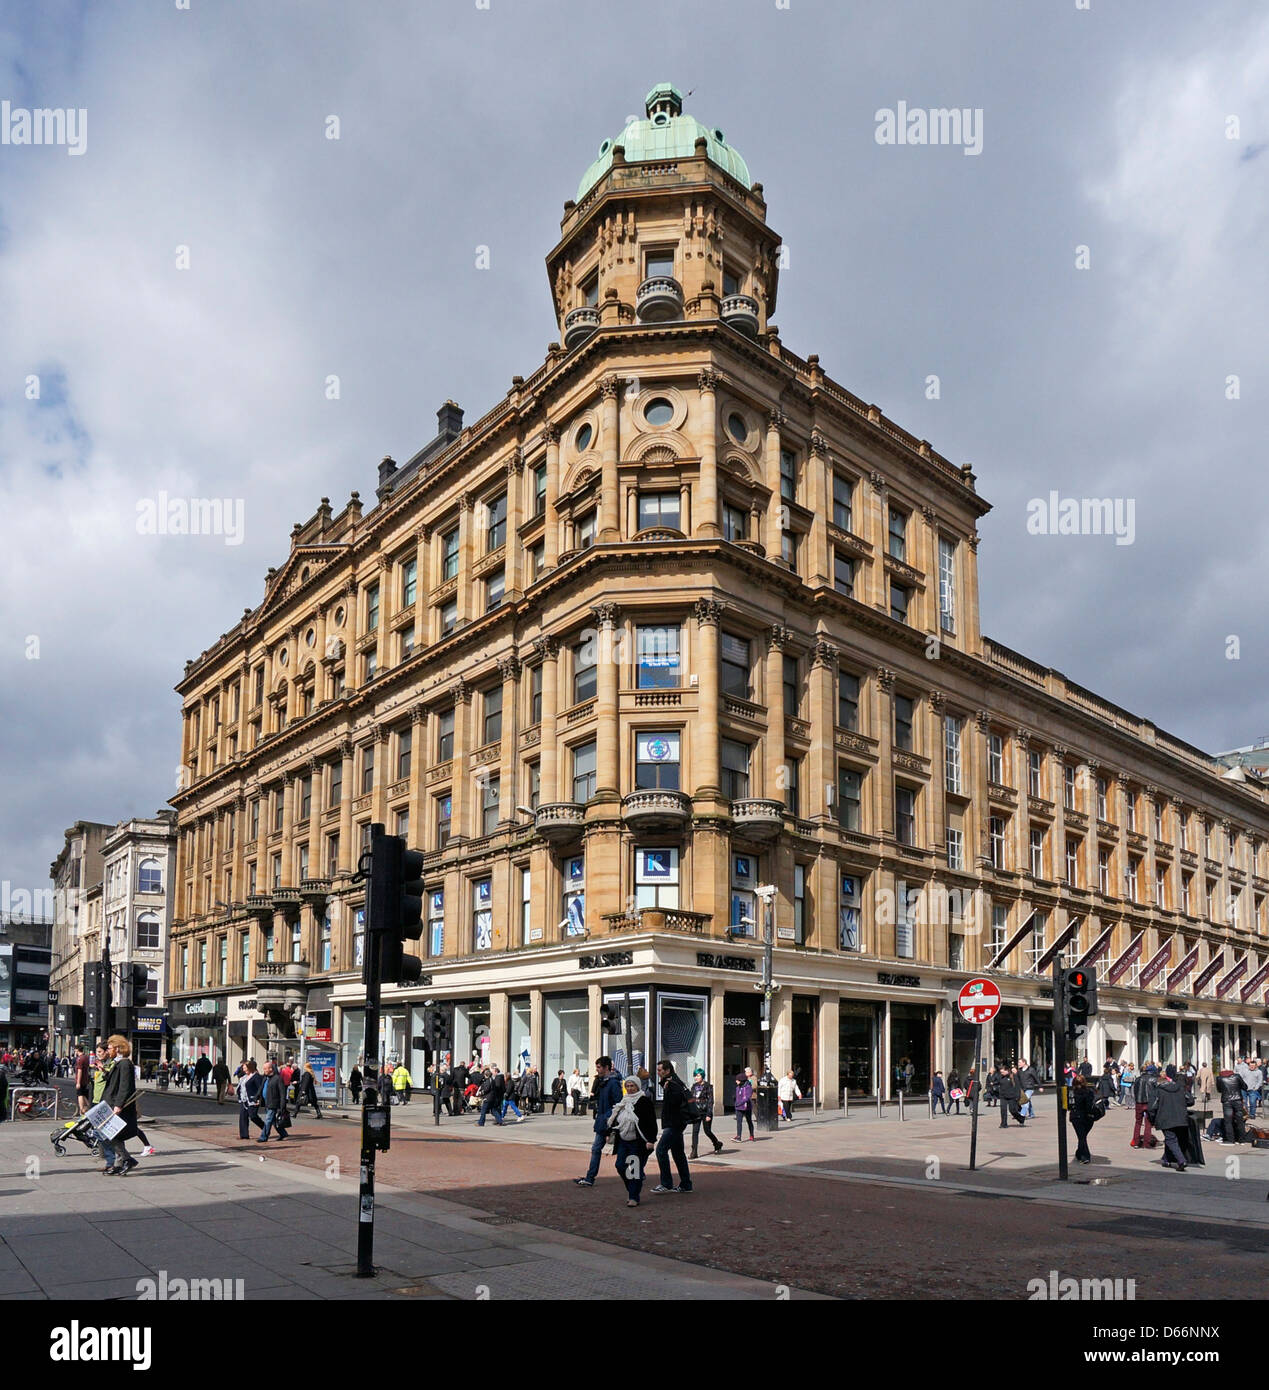 House of Fraser department store on the corner of Buchanan Street and Argyle Street in Glasgow Scotland - Stock Image